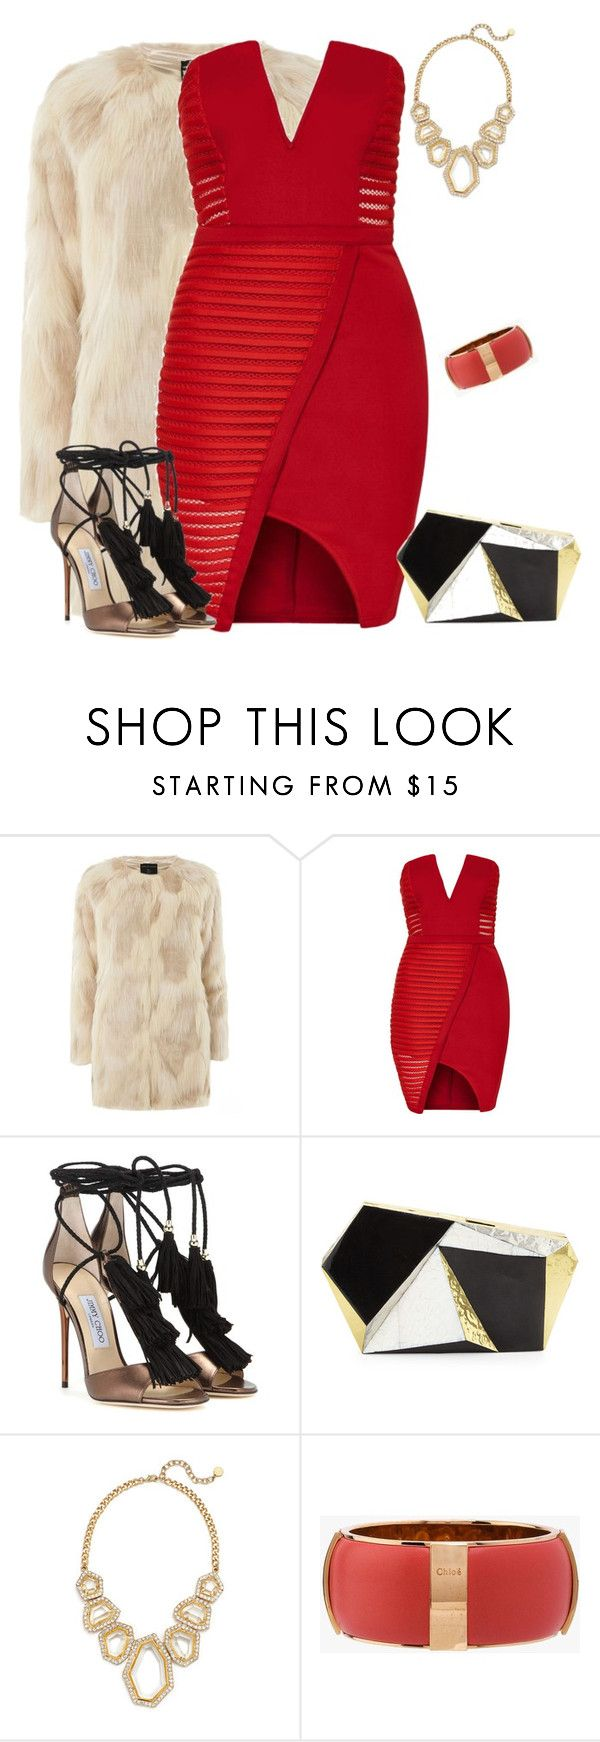 """""""outfit 3304"""" by natalyag ❤ liked on Polyvore featuring Dorothy Perkins, Topshop, Jimmy Choo, Rafe, R.J. Graziano, Chloé, women's clothing, women, female and woman"""